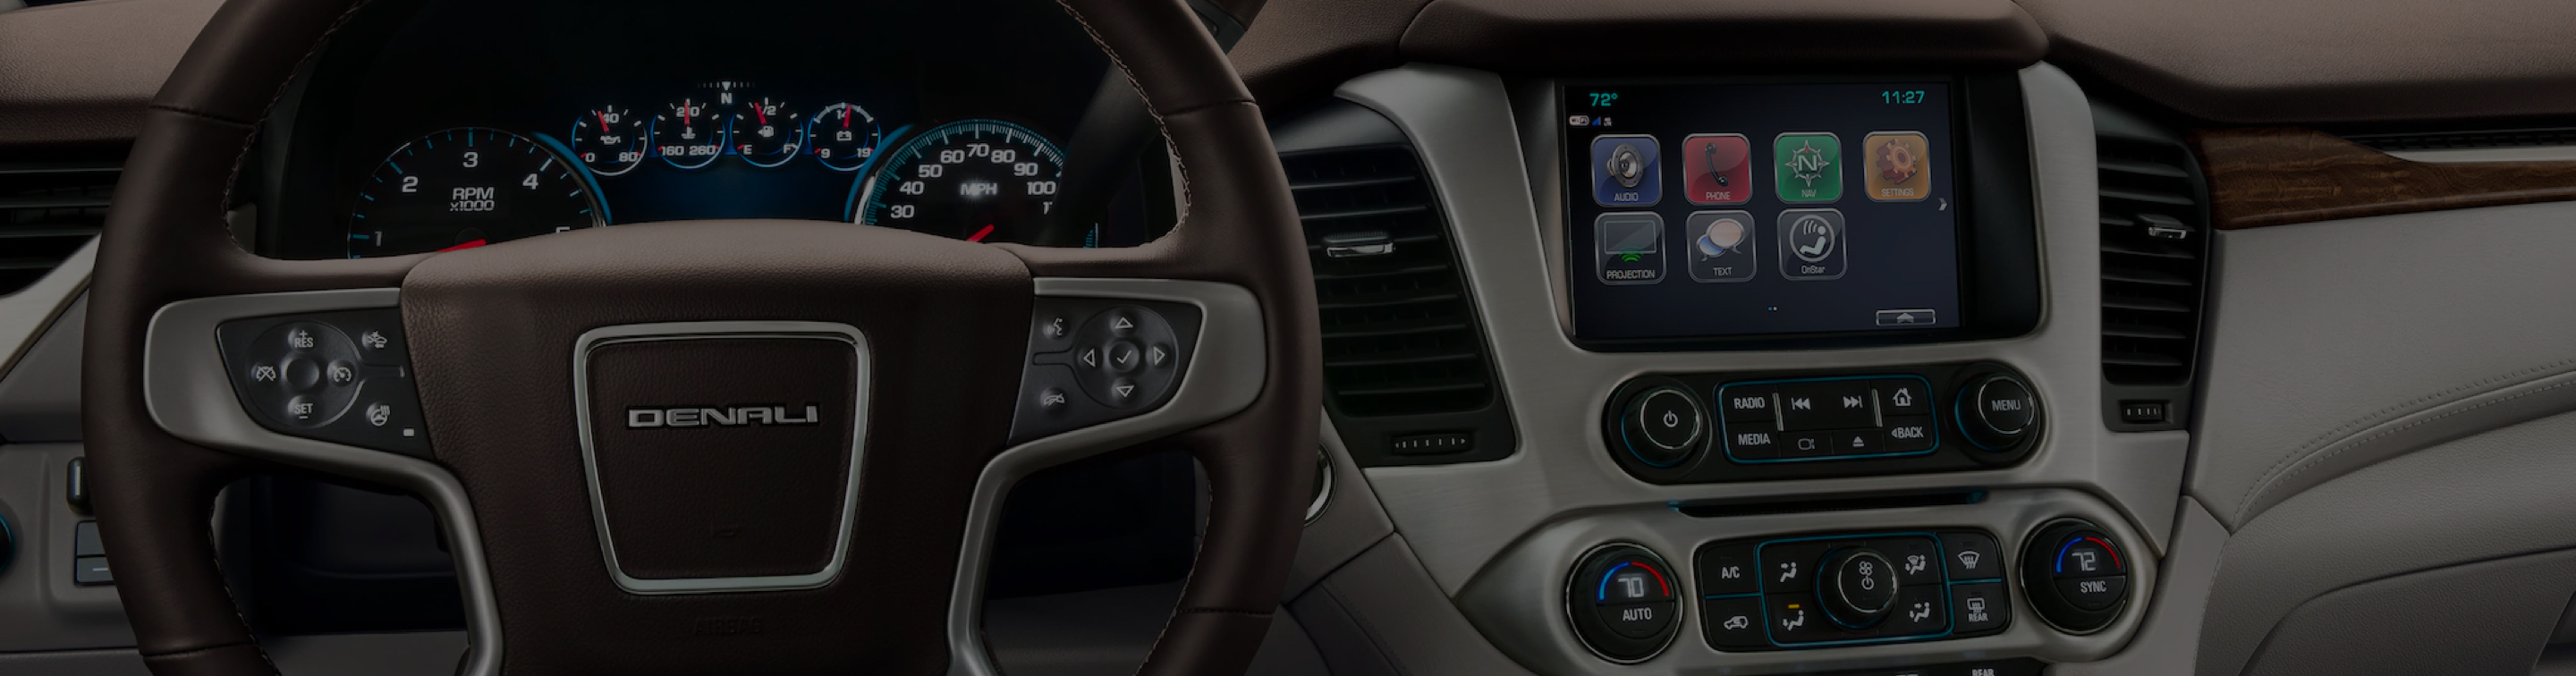 A shot of a vehicle's dashboard